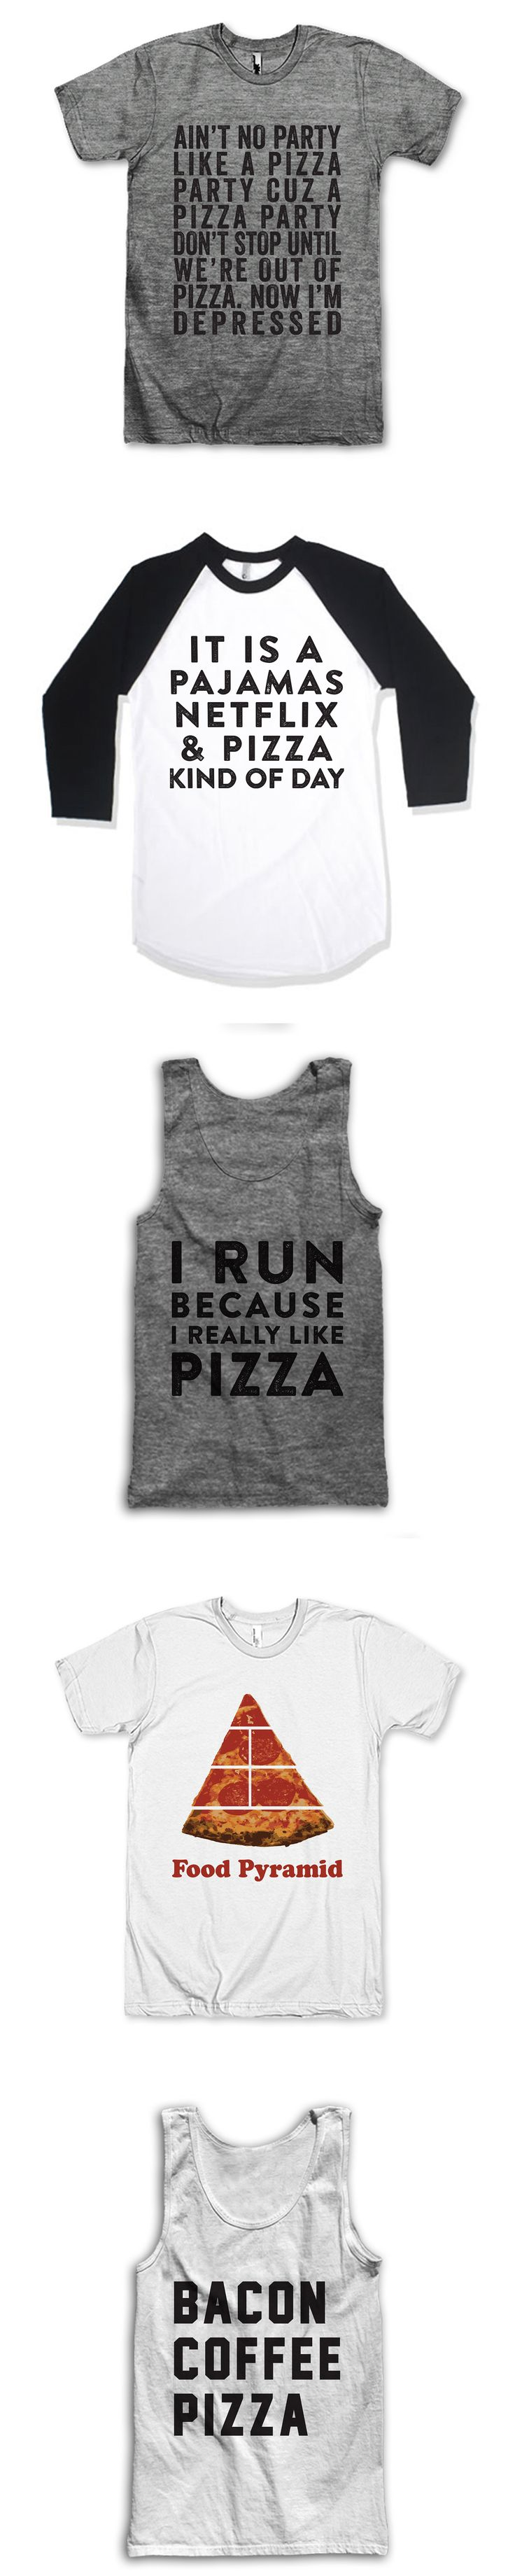 If you love 'Za we've got your back, search through tons of funny Pizza shirts, grab a Coffee inspired tank top, or find something that professes your never ending love for all things nap related. We've got gifts for mom, dad or your best friend. At Awesome Best Friends Tees we've got Tank Tops and T Shirts for everyone!